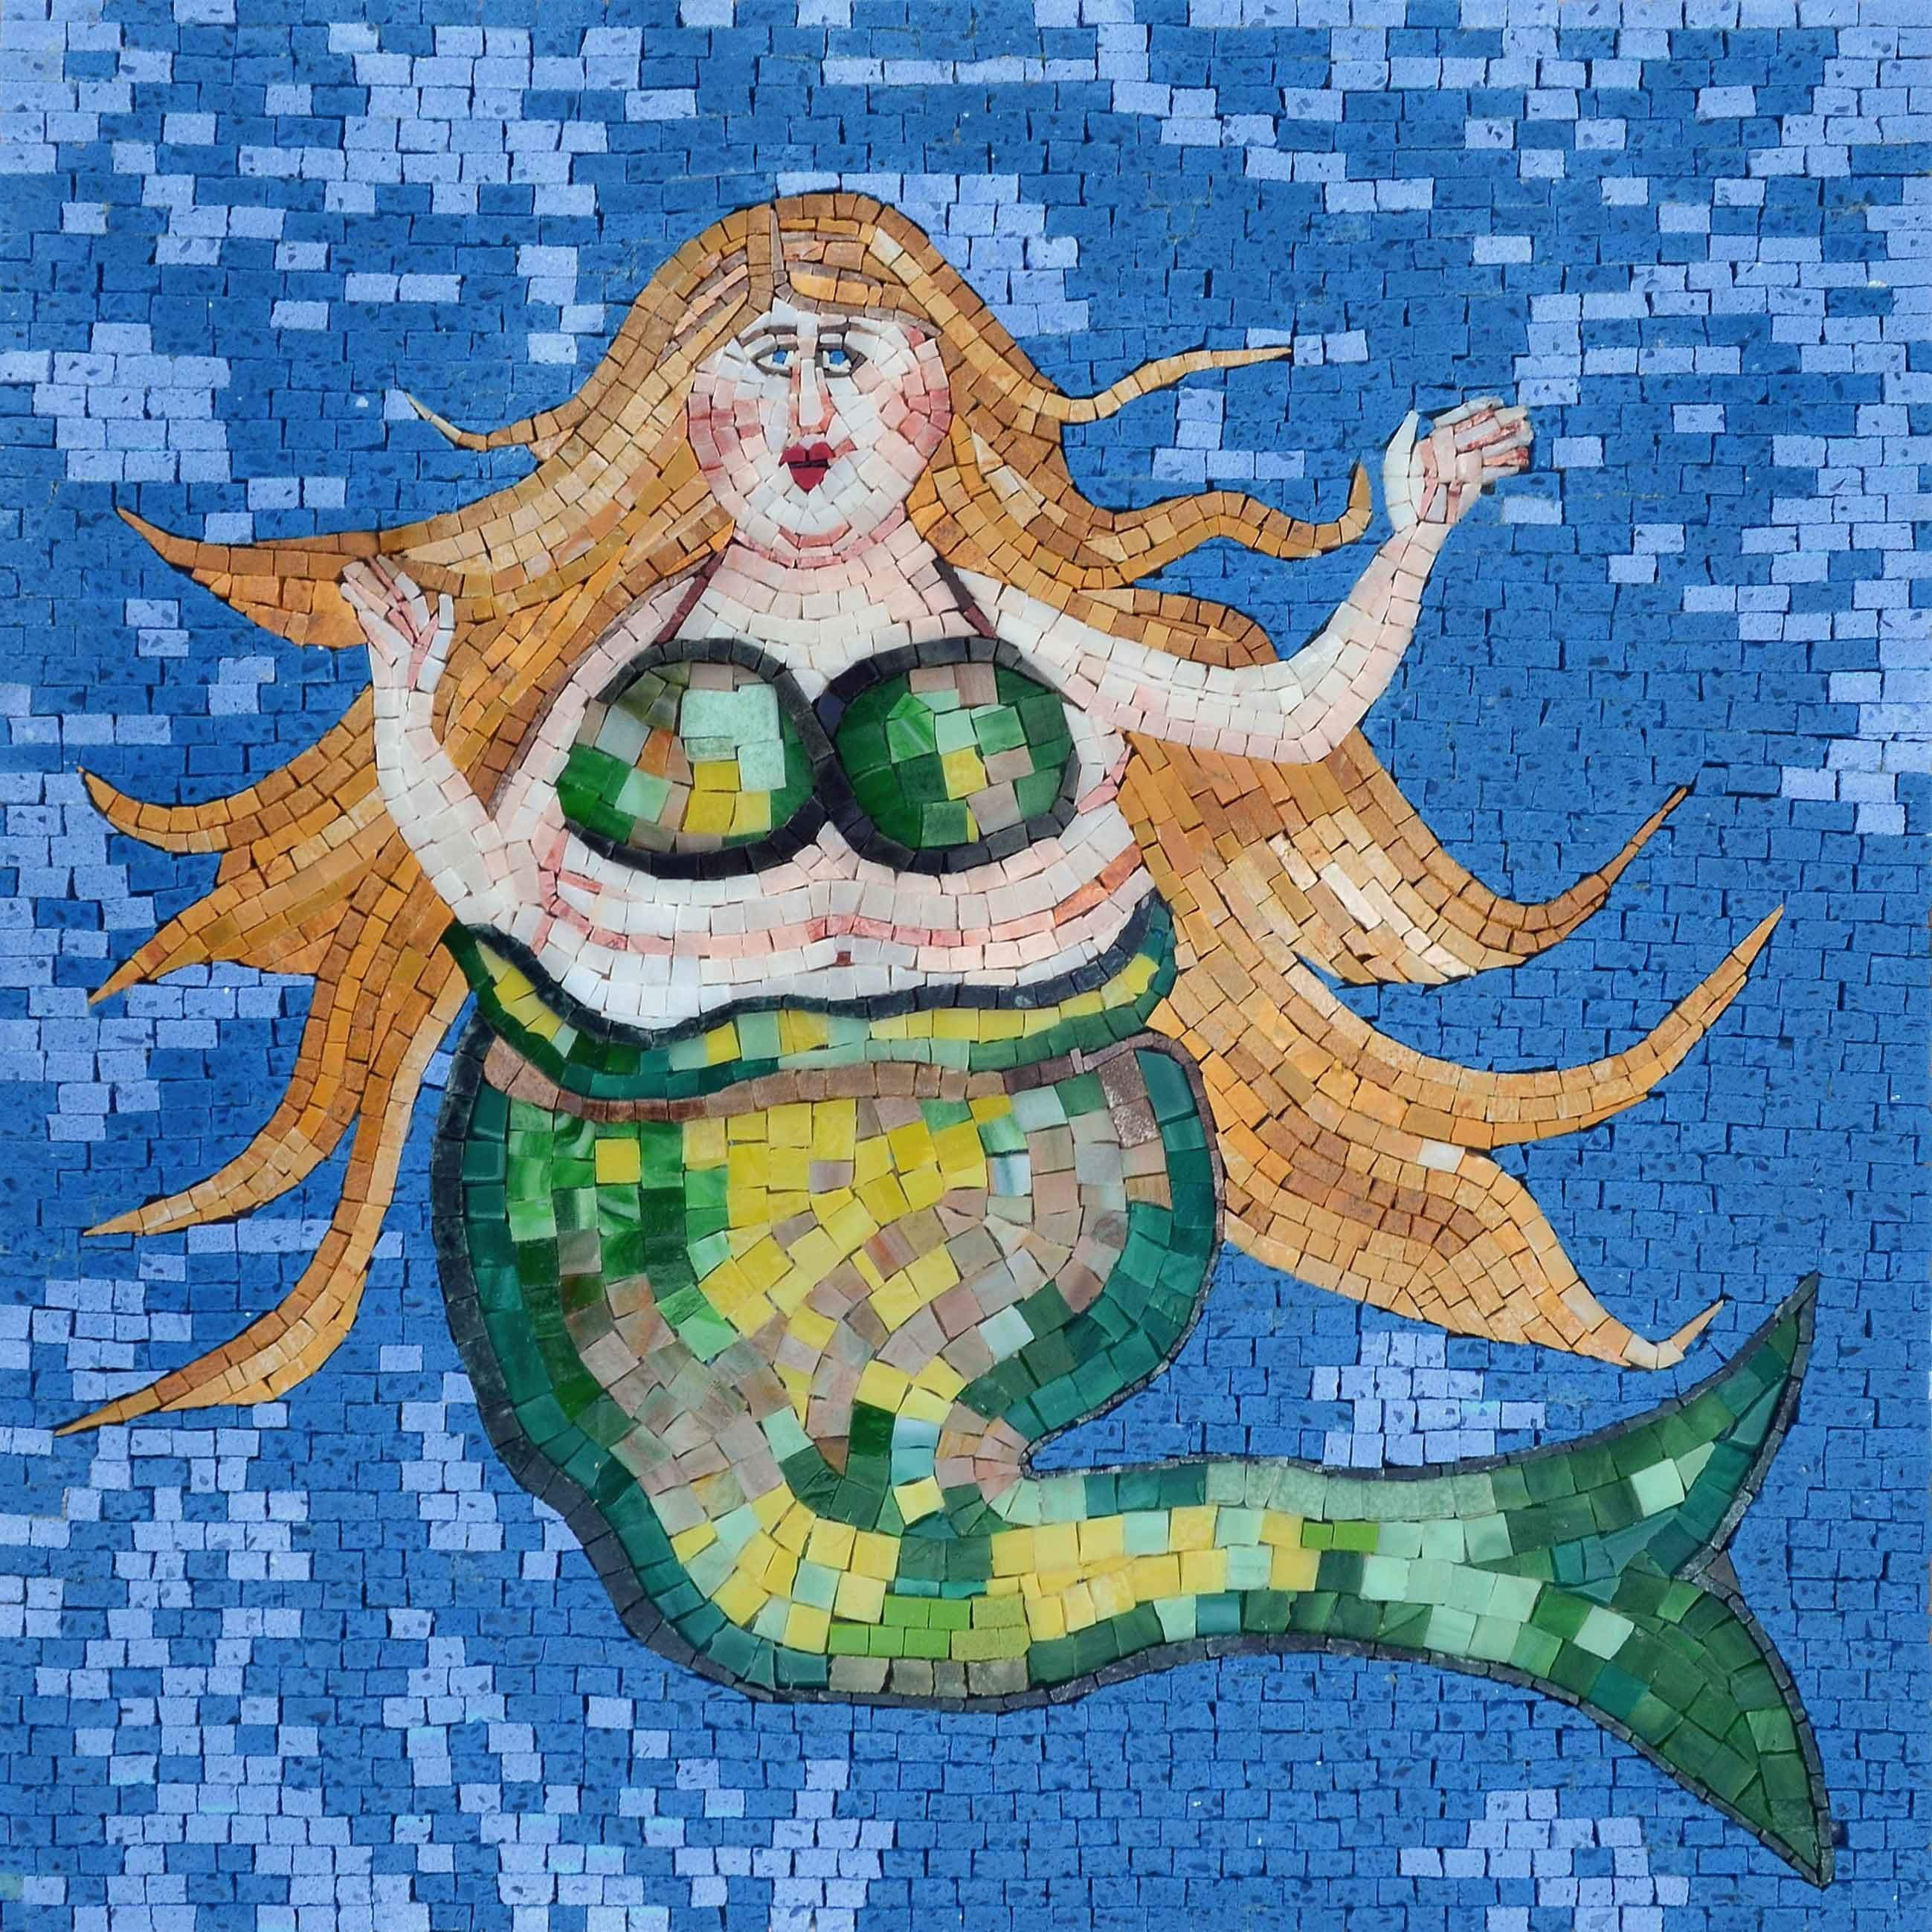 Mermaid Mosaic Tile Patterns